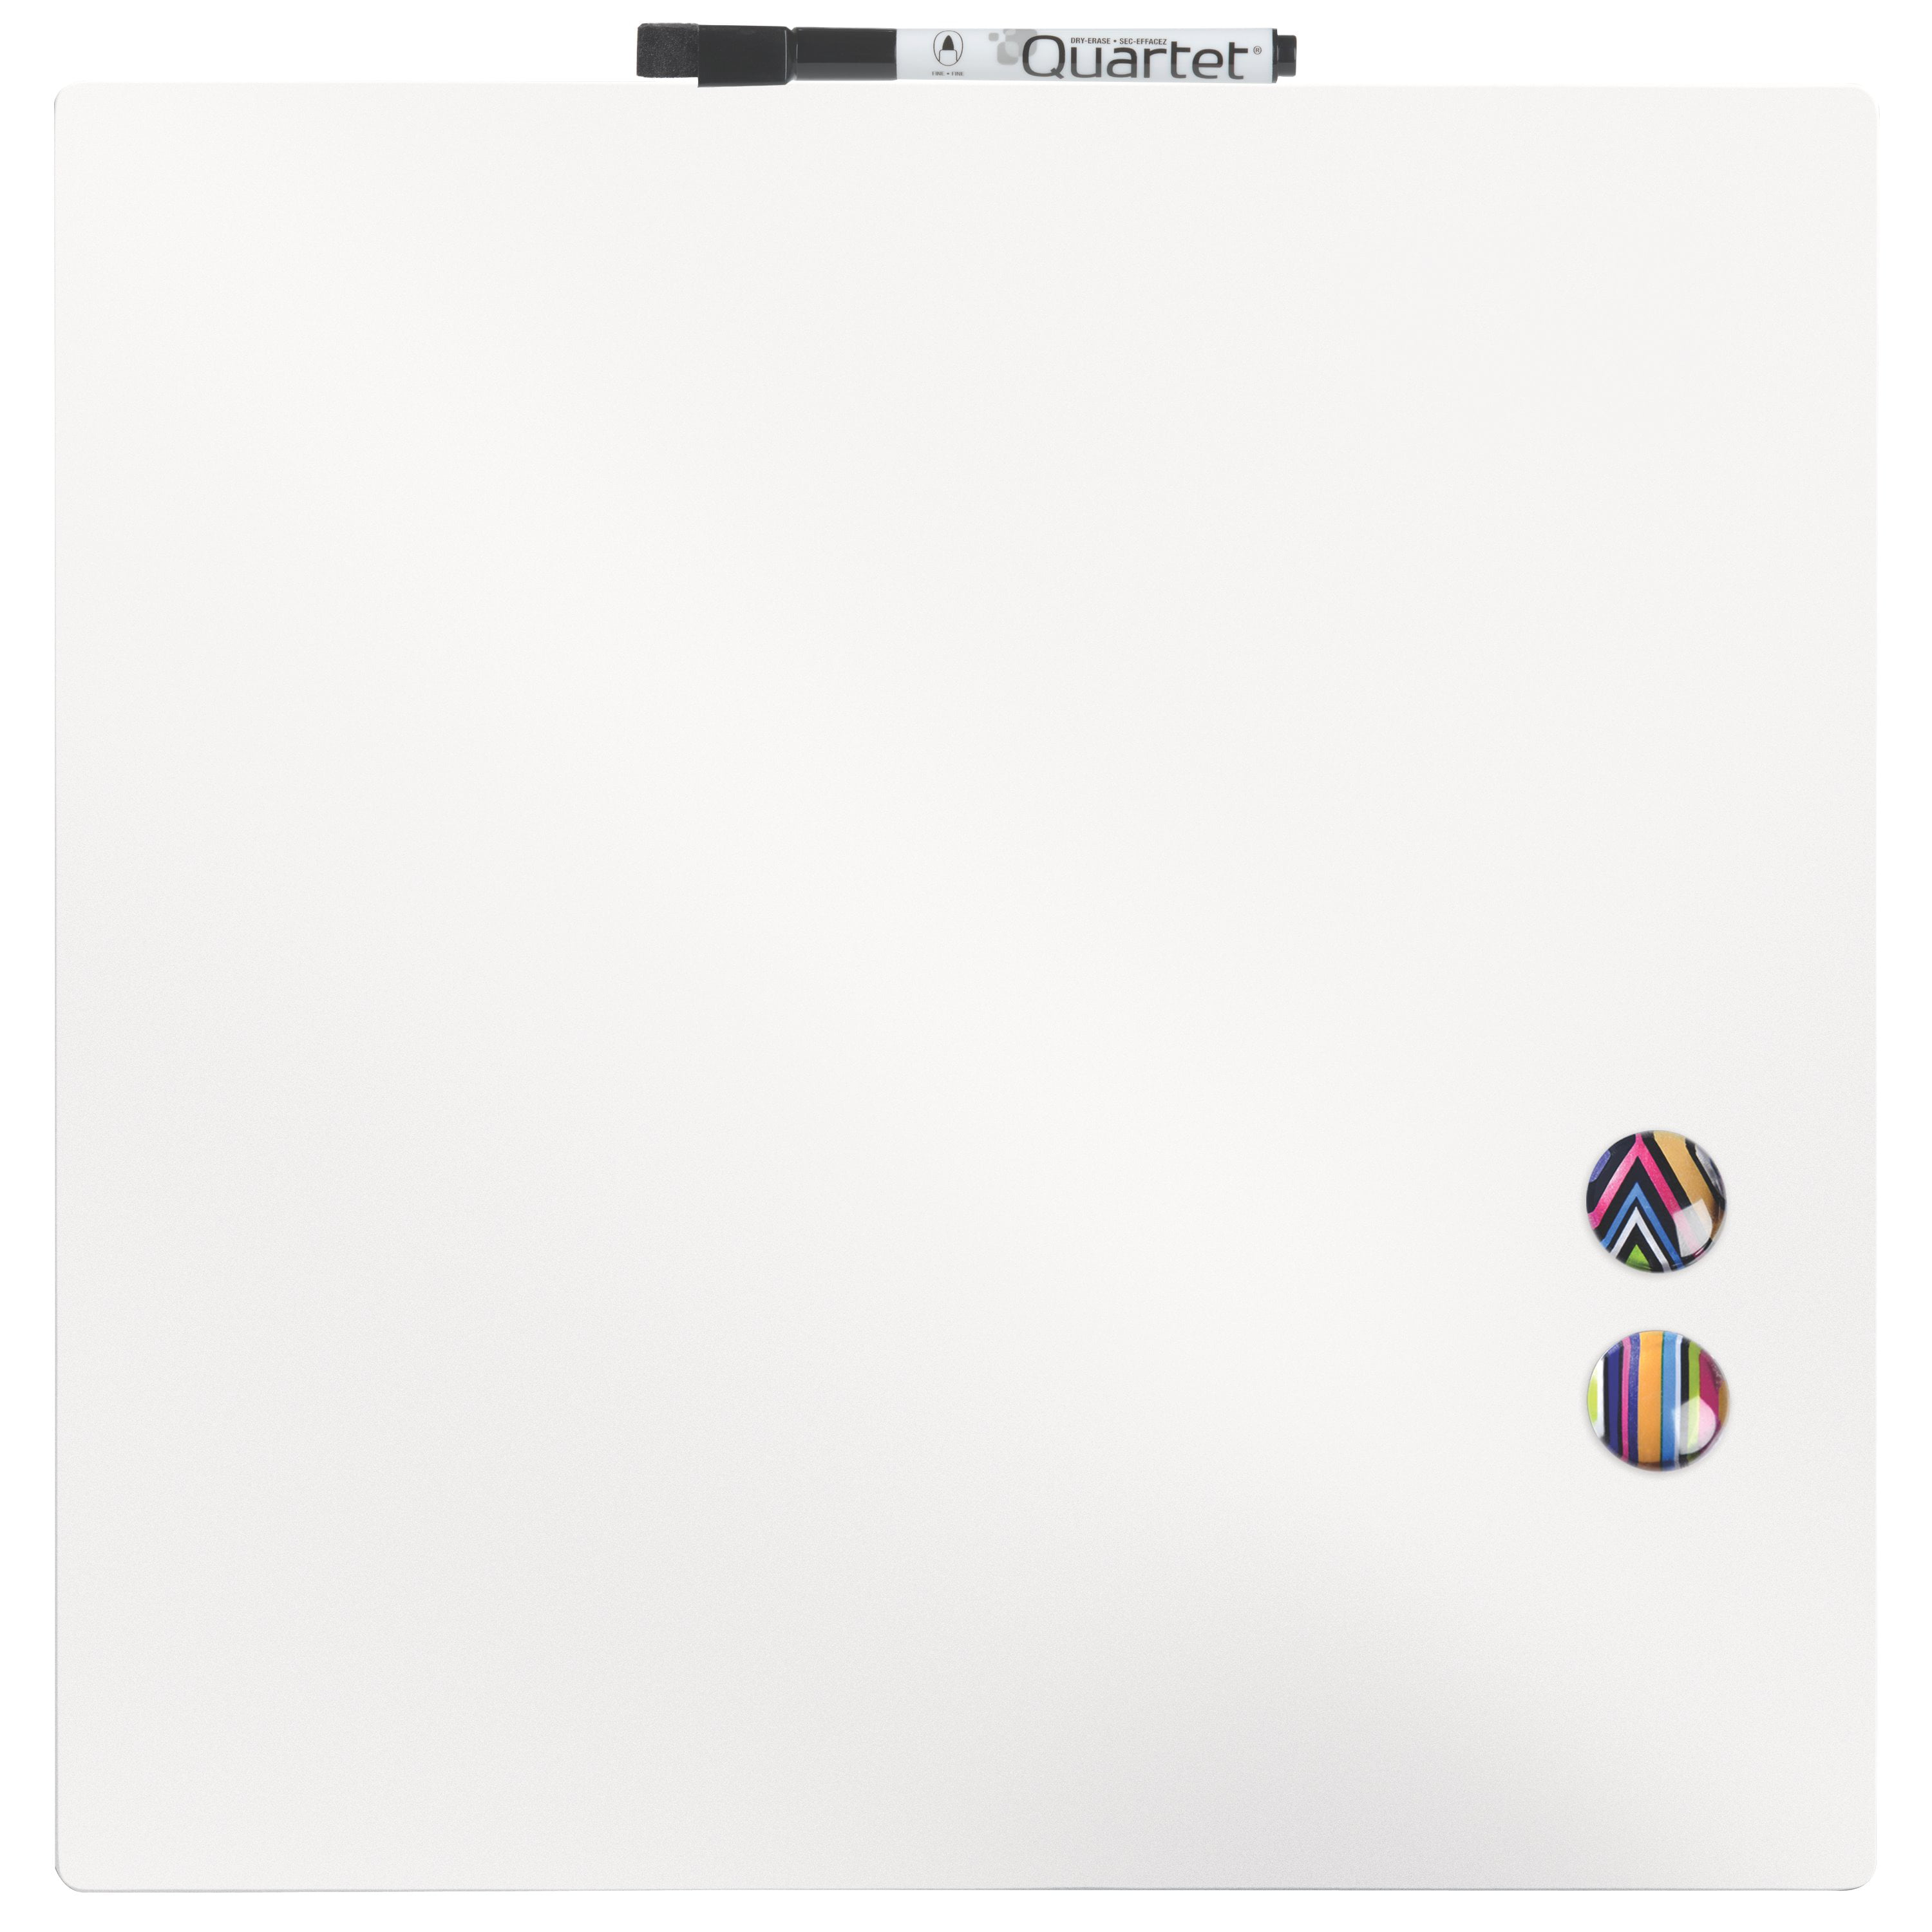 """Quartet Magnetic Dry-Erase Board Tile, 14"""" x 14\ by ACCO BRANDS"""